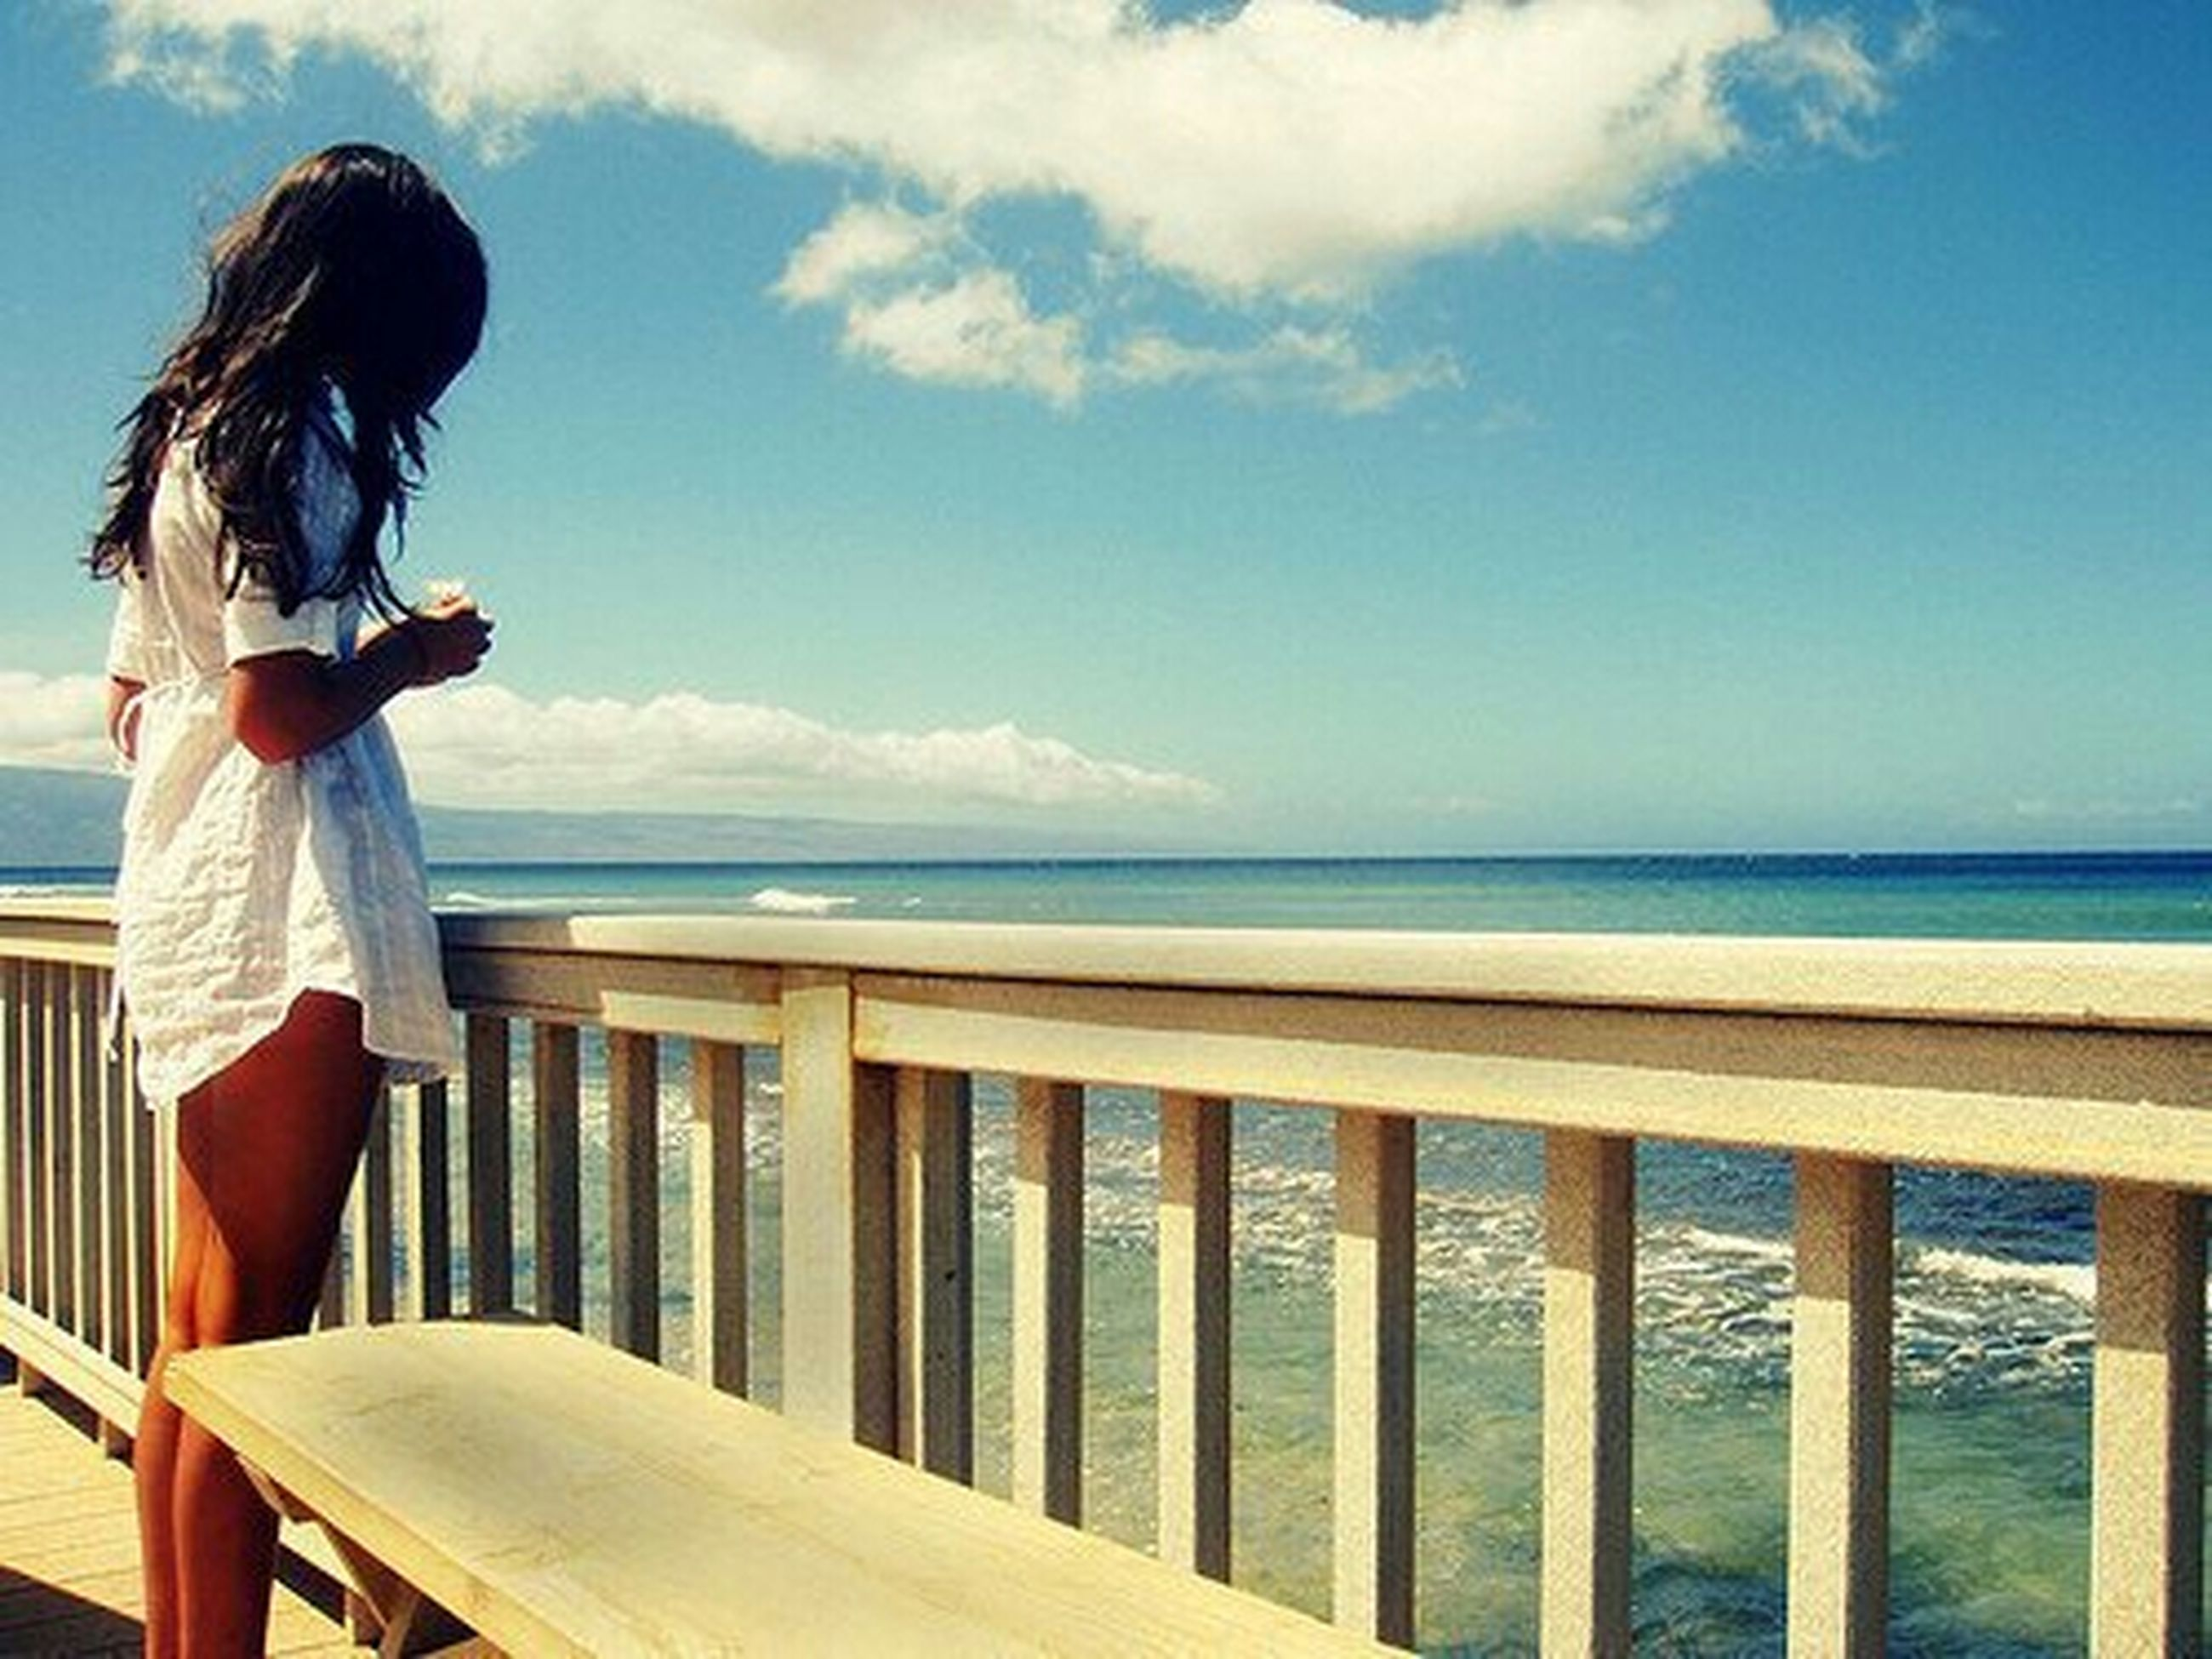 sea, horizon over water, water, lifestyles, railing, sky, leisure activity, rear view, casual clothing, standing, looking at view, scenics, beach, tranquility, nature, young adult, tranquil scene, relaxation